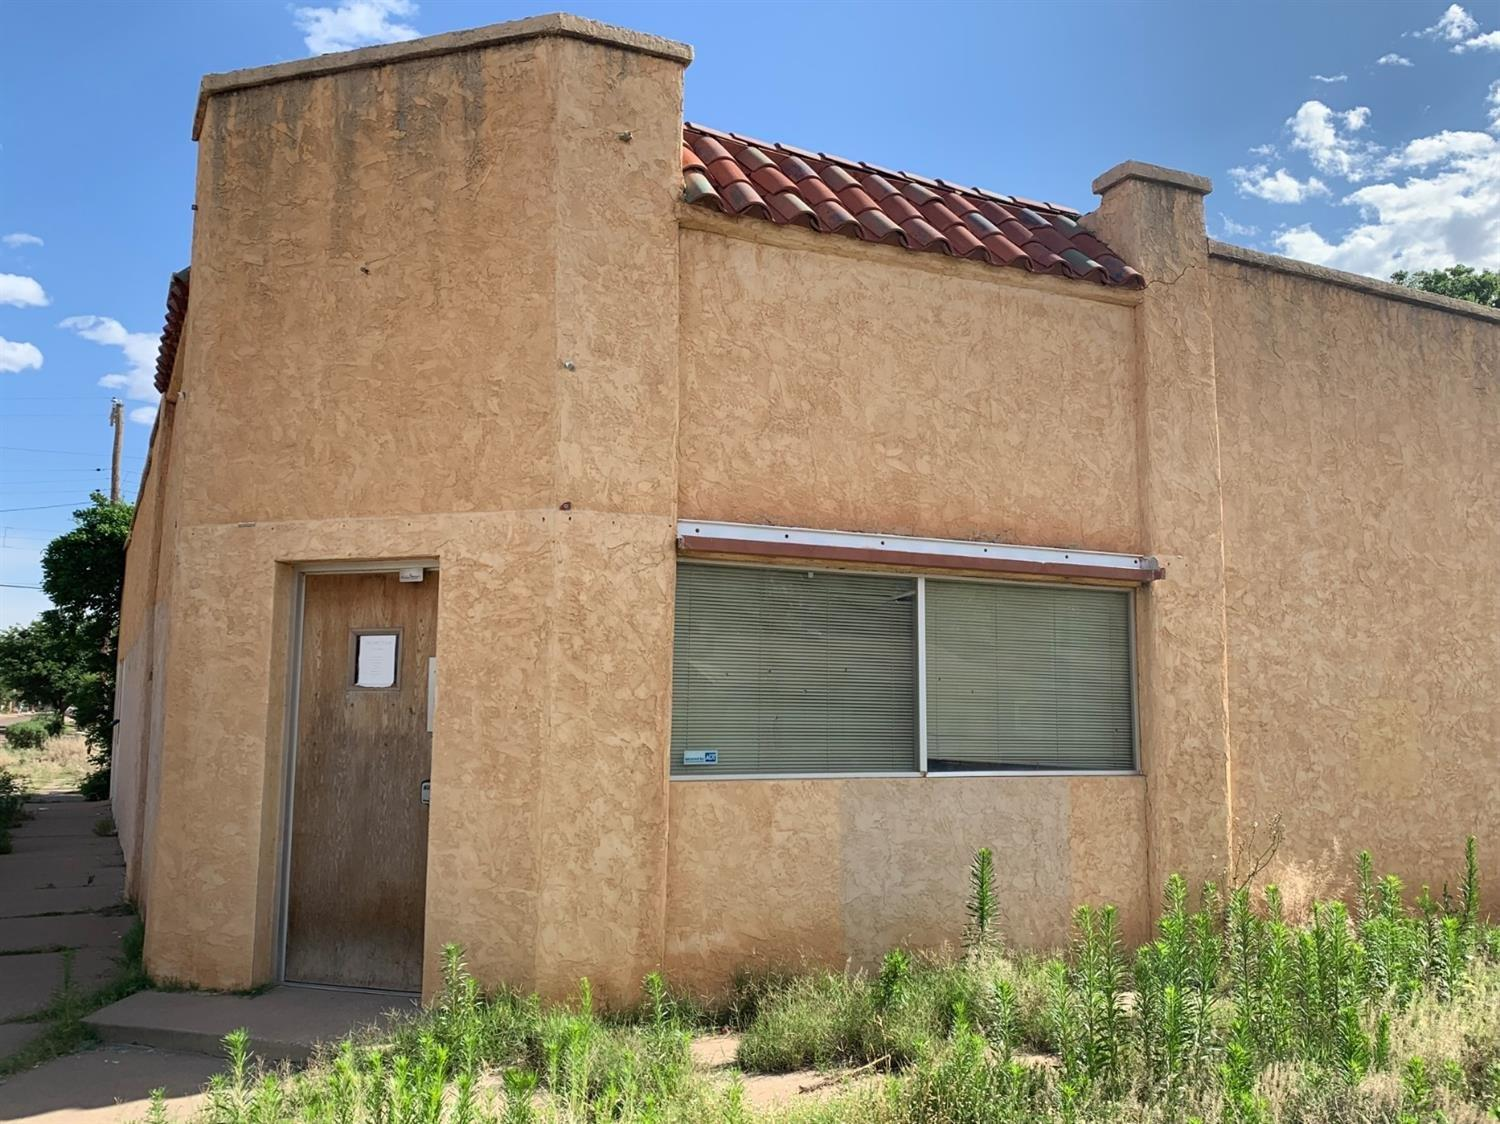 Fantastic opportunity in South Overton only blocks from Texas Tech!  Commercial building with so many possibilities: warehouse, office, 4-plex, business, retail, etc! 1860 square foot building with large lot and plenty of space for parking or development. City of Lubbock zone is C1.